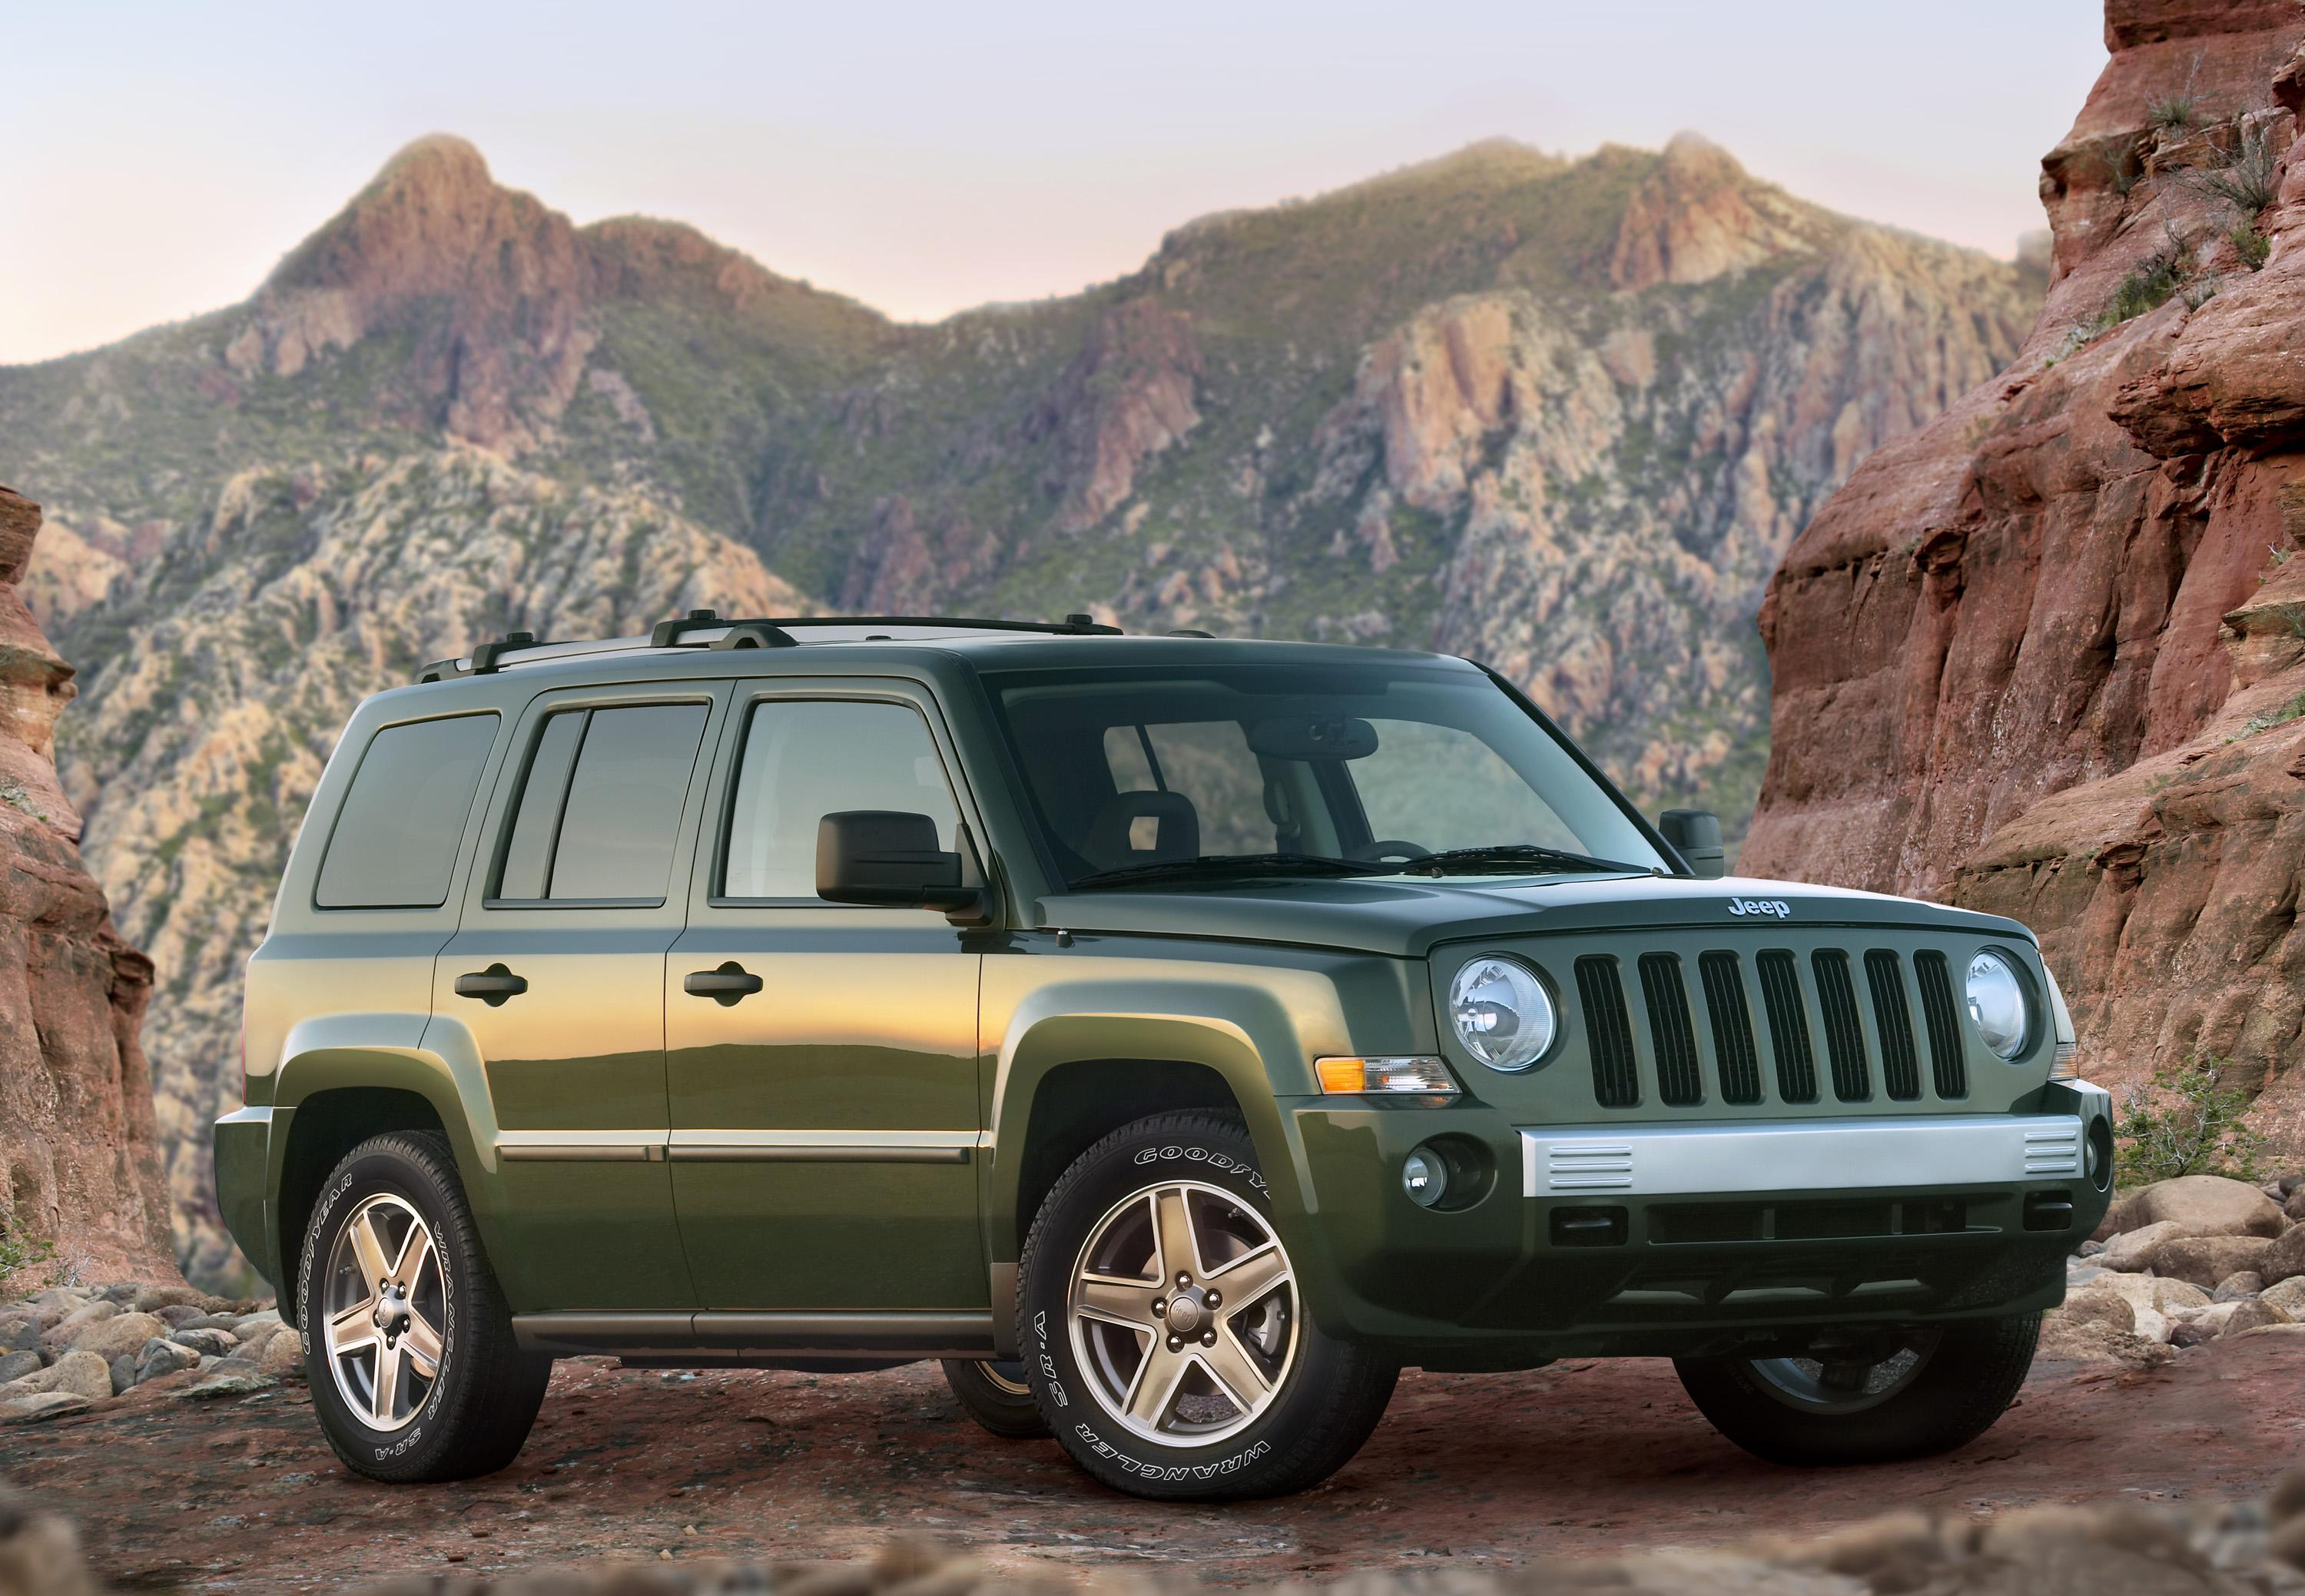 2007 jeep patriot prices announced news top speed. Black Bedroom Furniture Sets. Home Design Ideas